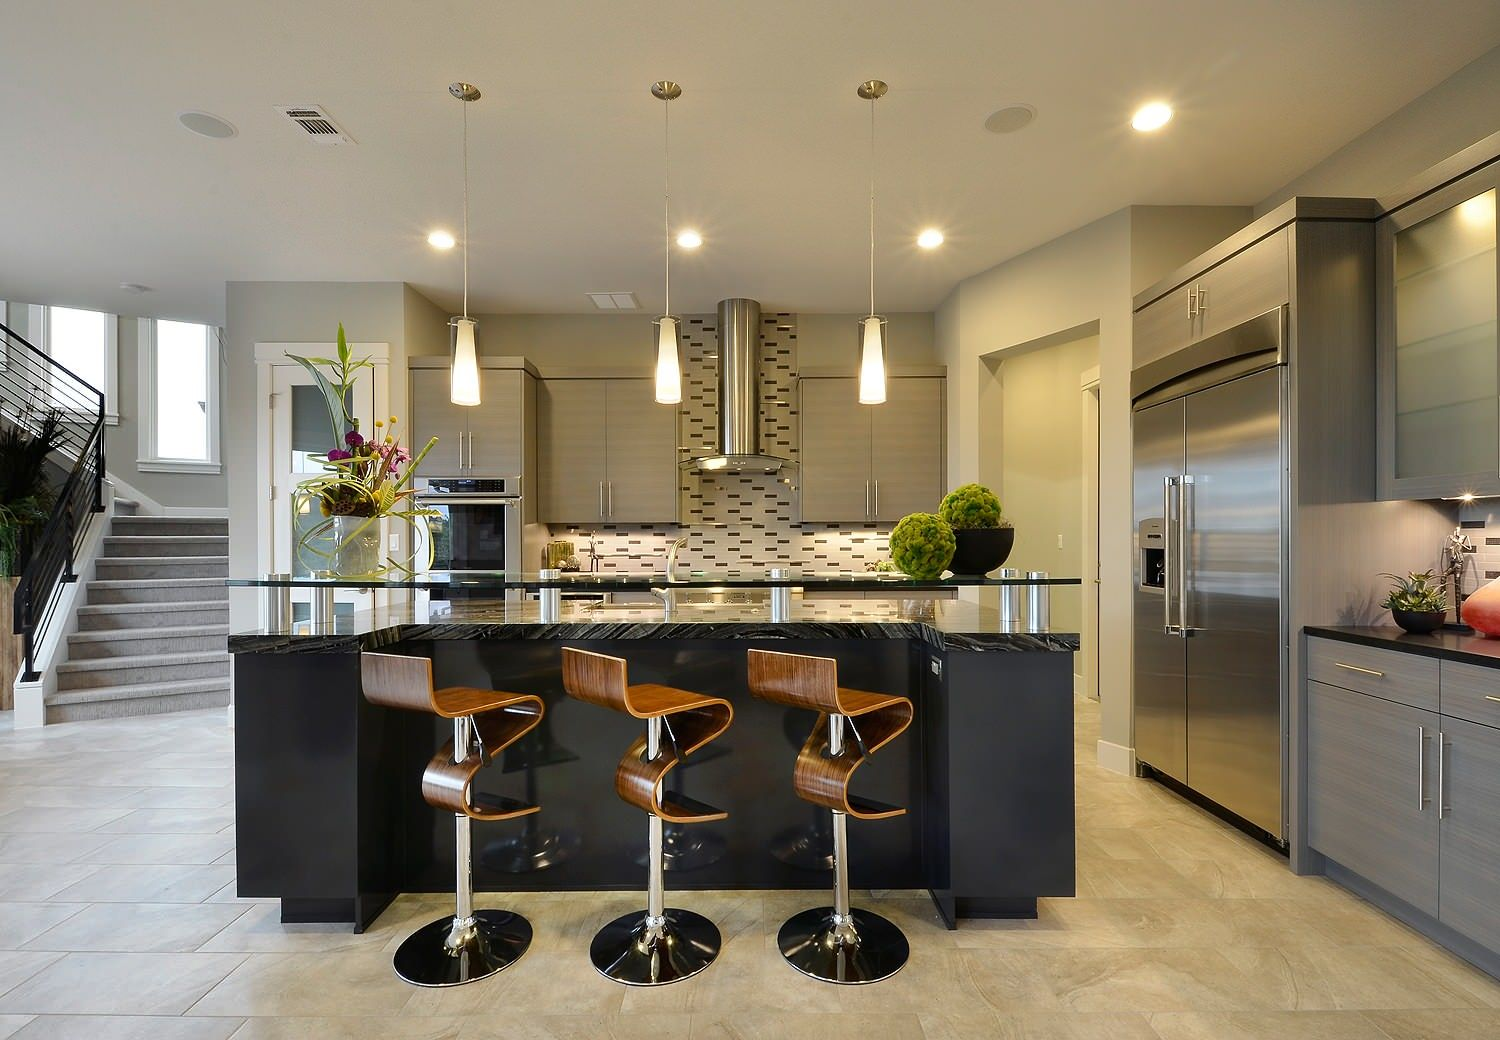 Woodsy bar stools also add geometric style and curvy elegance to the kitchen